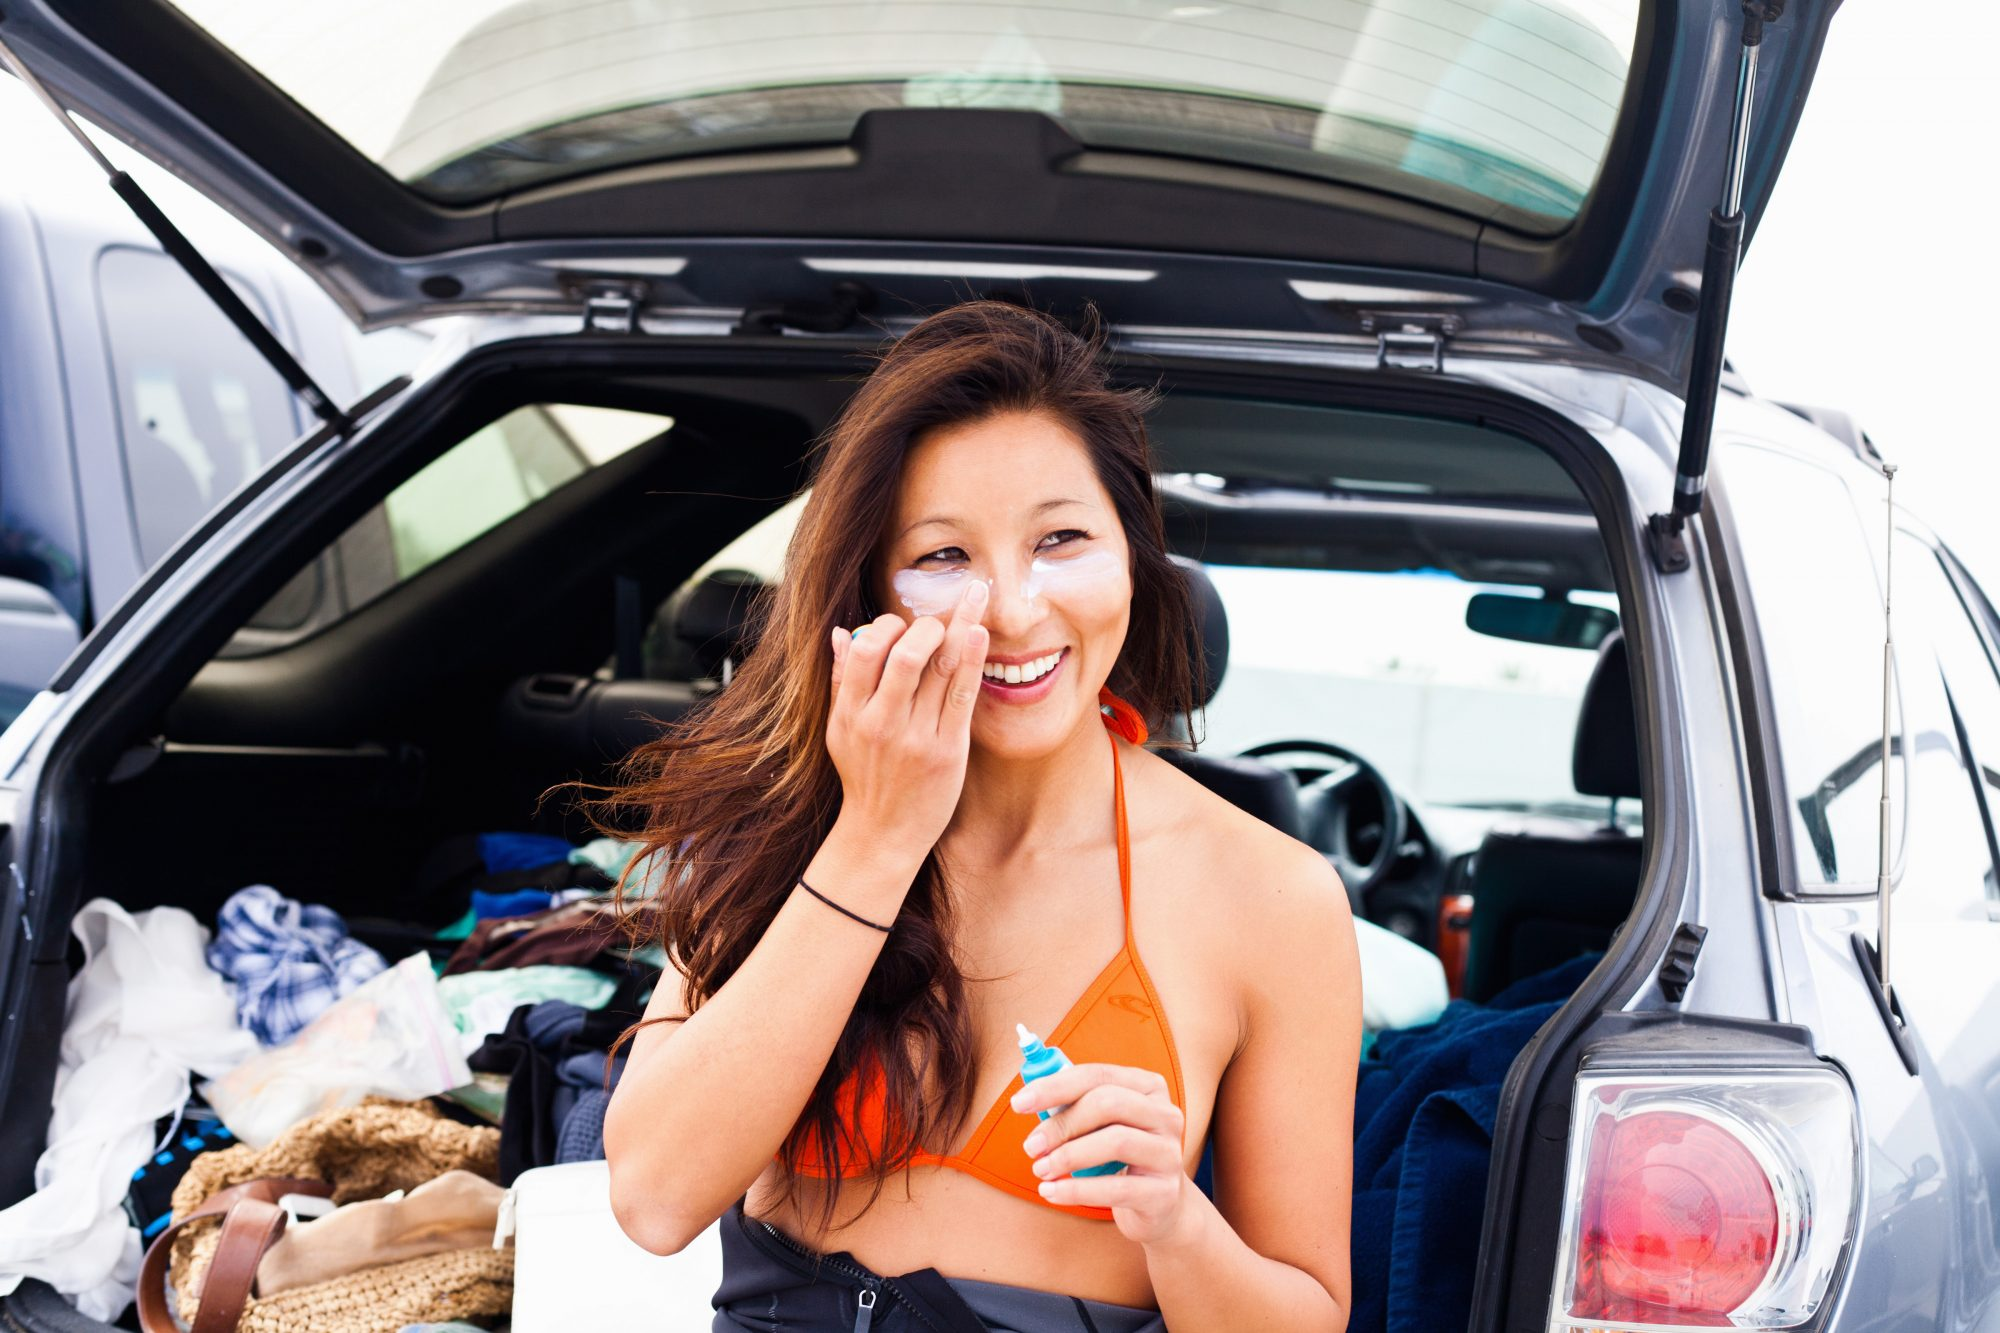 woman applying sunscreen to face sitting back of car